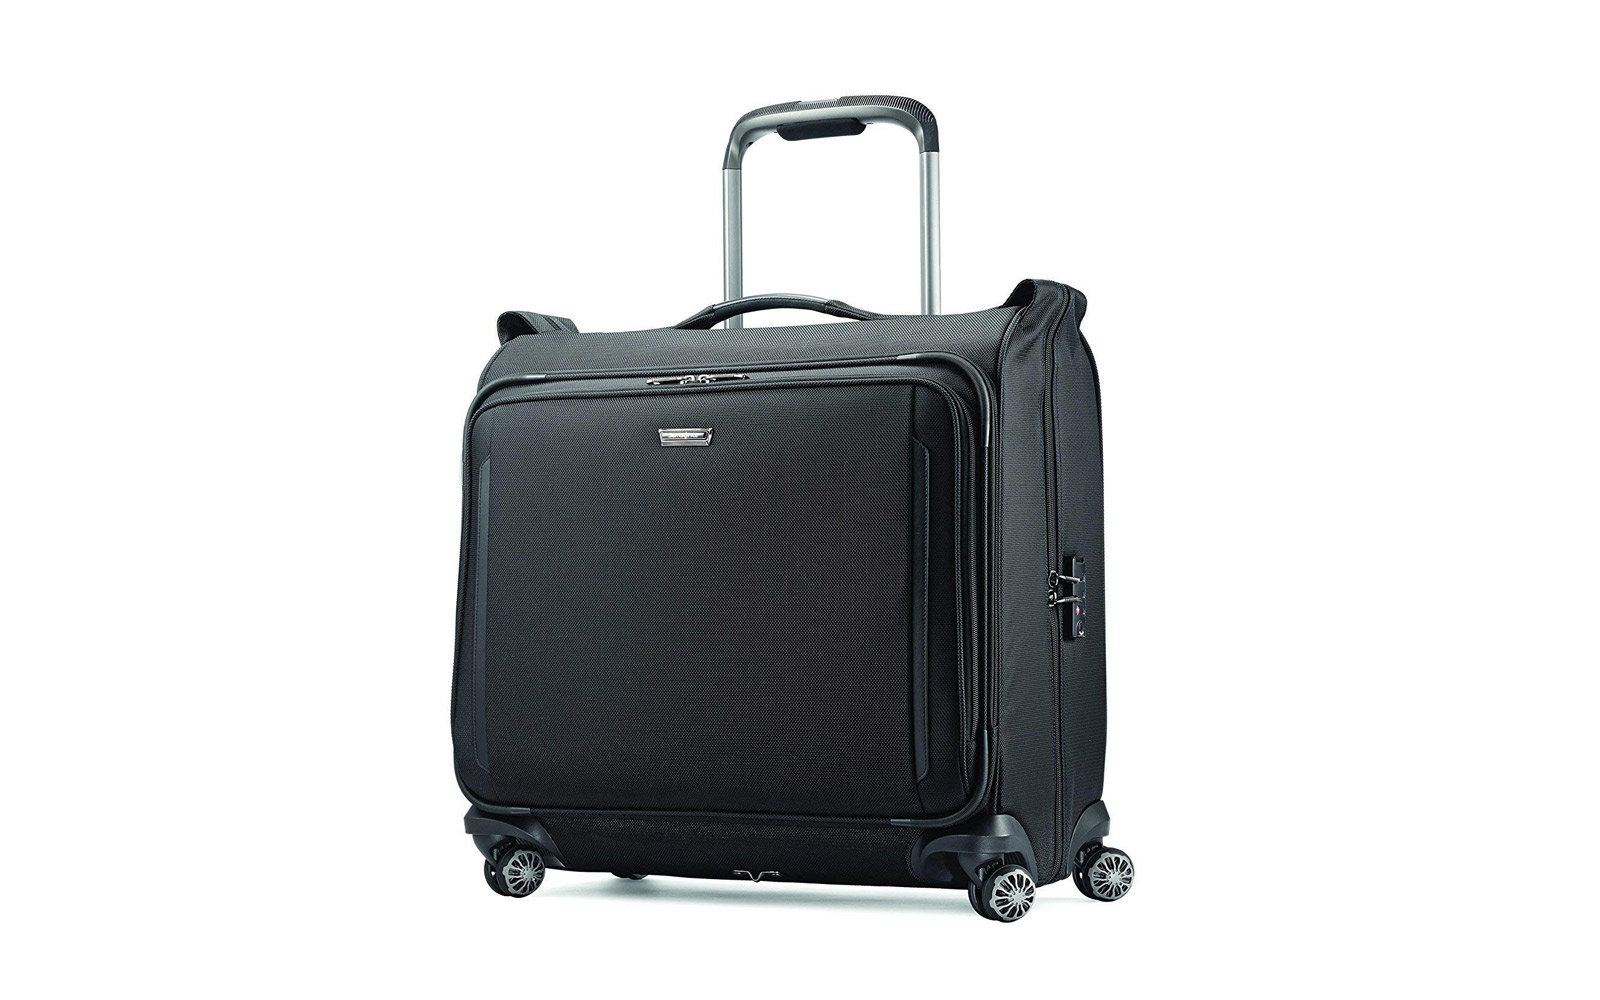 Samsonite Silhouette Softside Deluxe Voyager Garment Bag